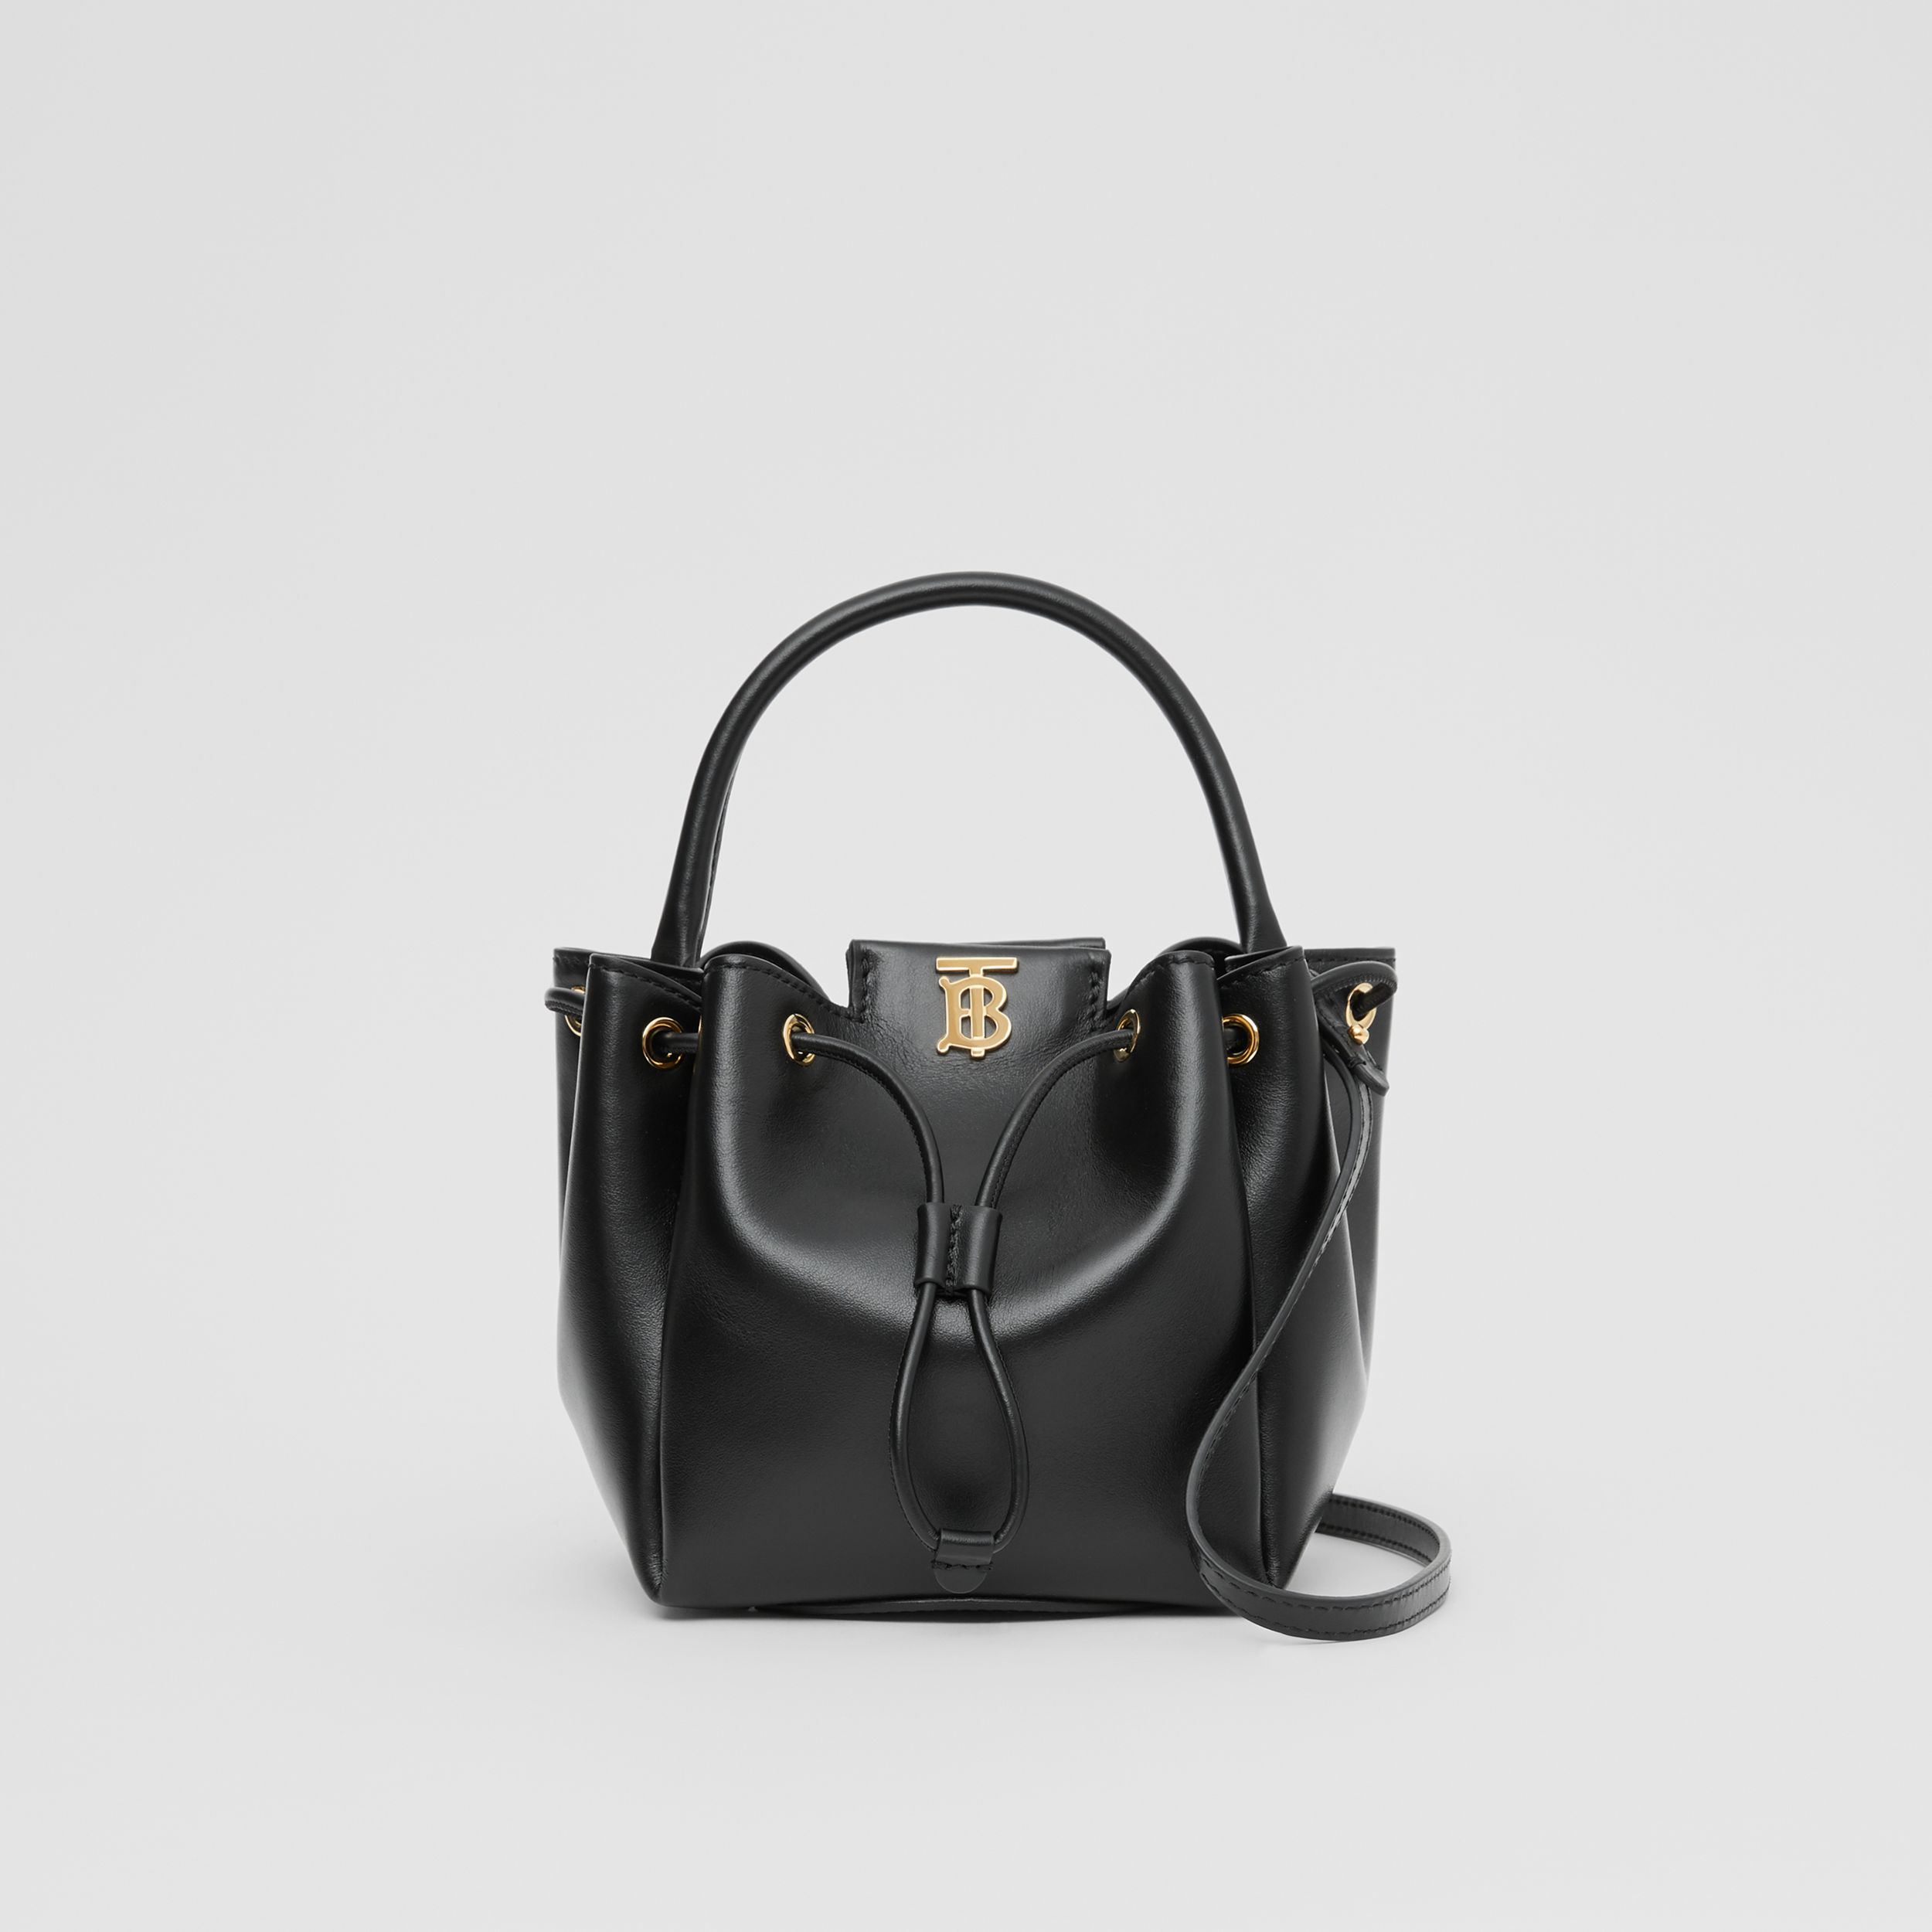 Monogram Motif Leather Bucket Bag in Black - Women | Burberry United States - 1